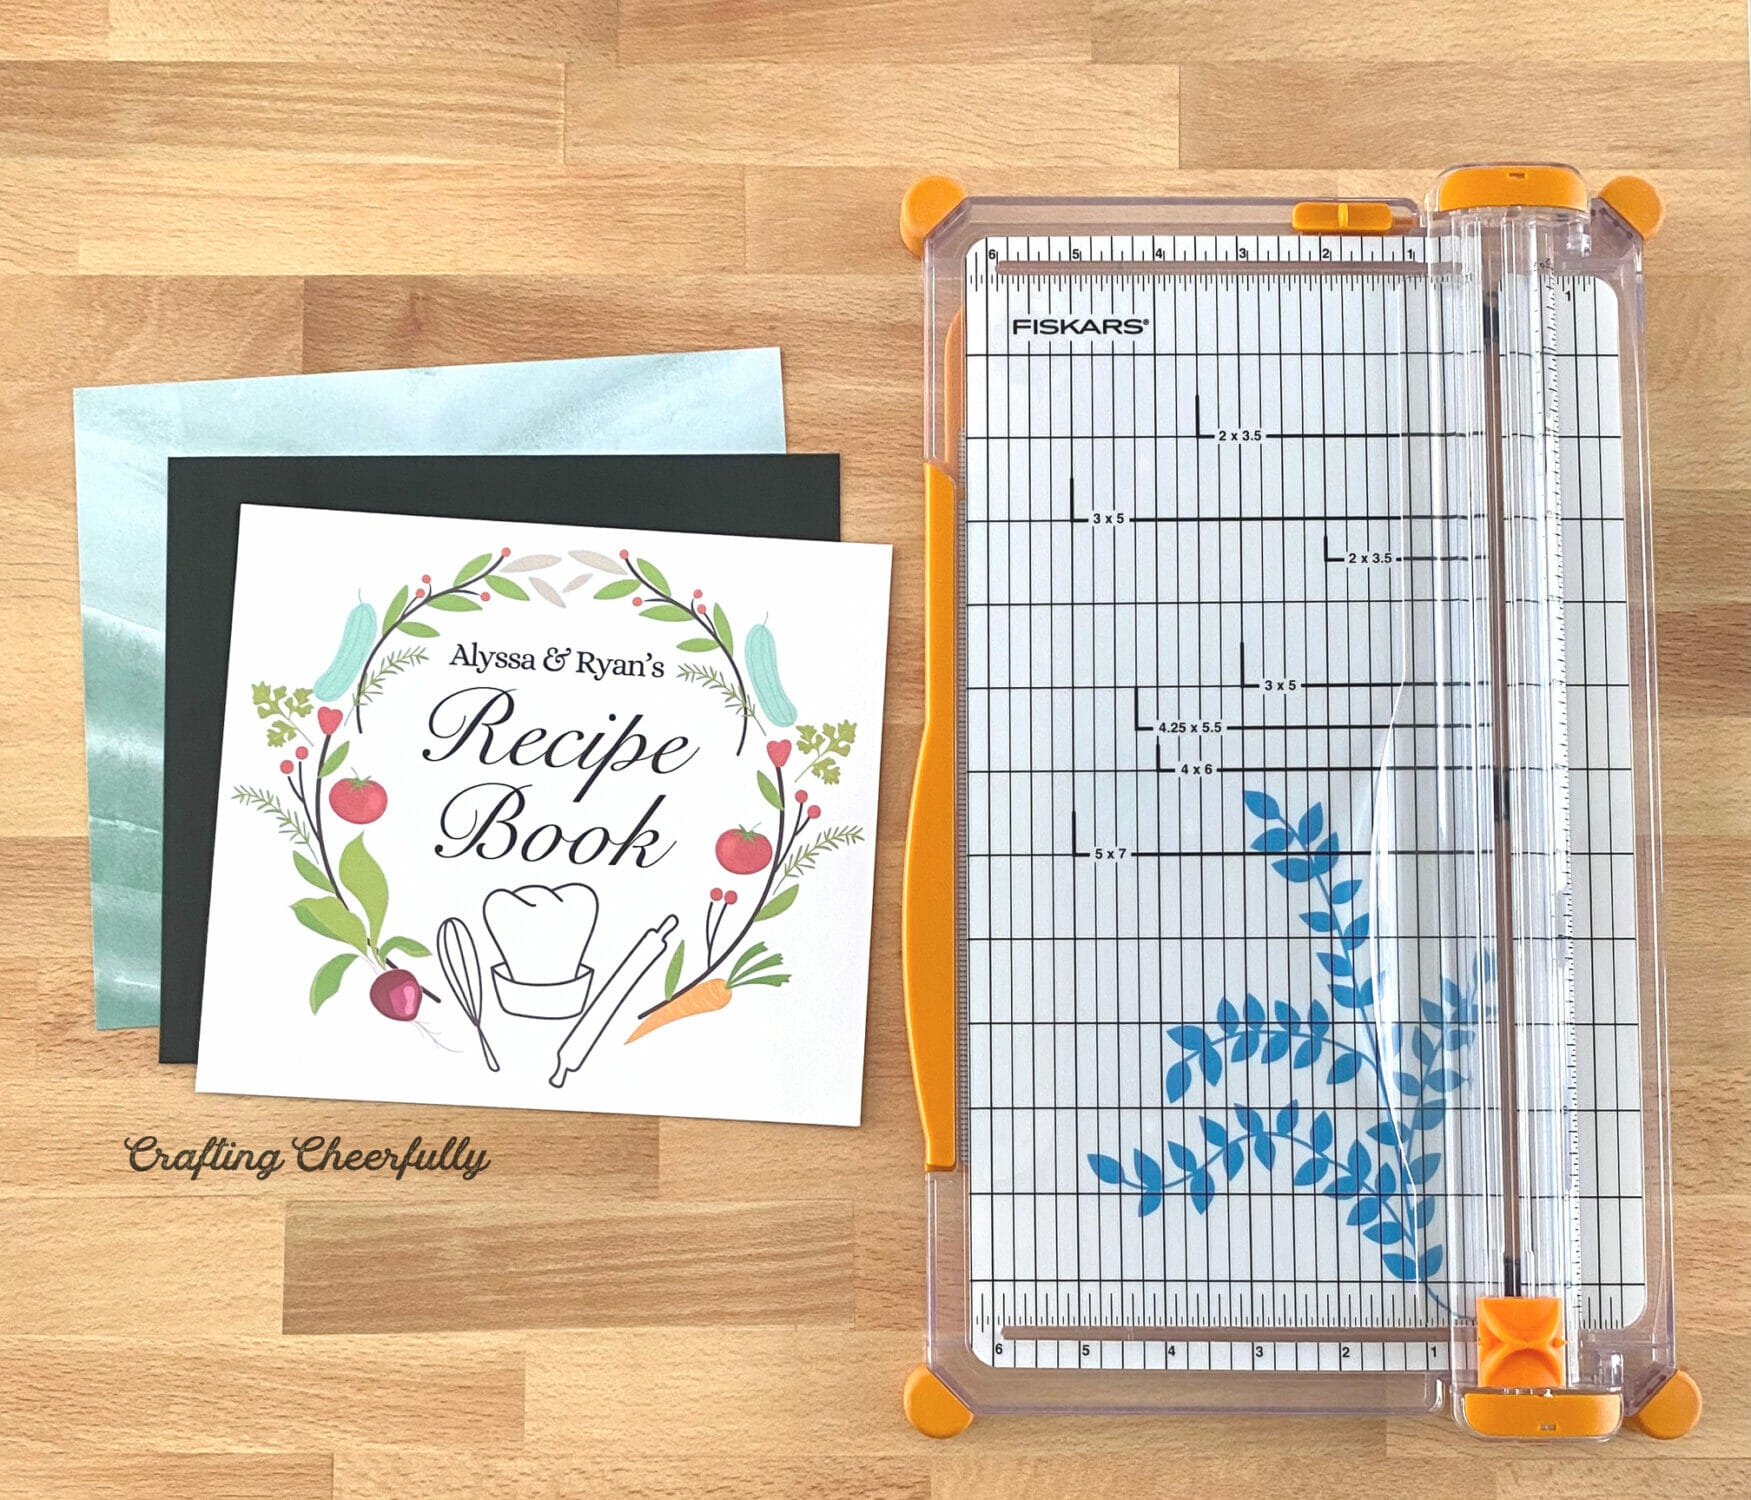 Recipe Binder Label and sheets of scrapbook paper next to a paper trimmer.